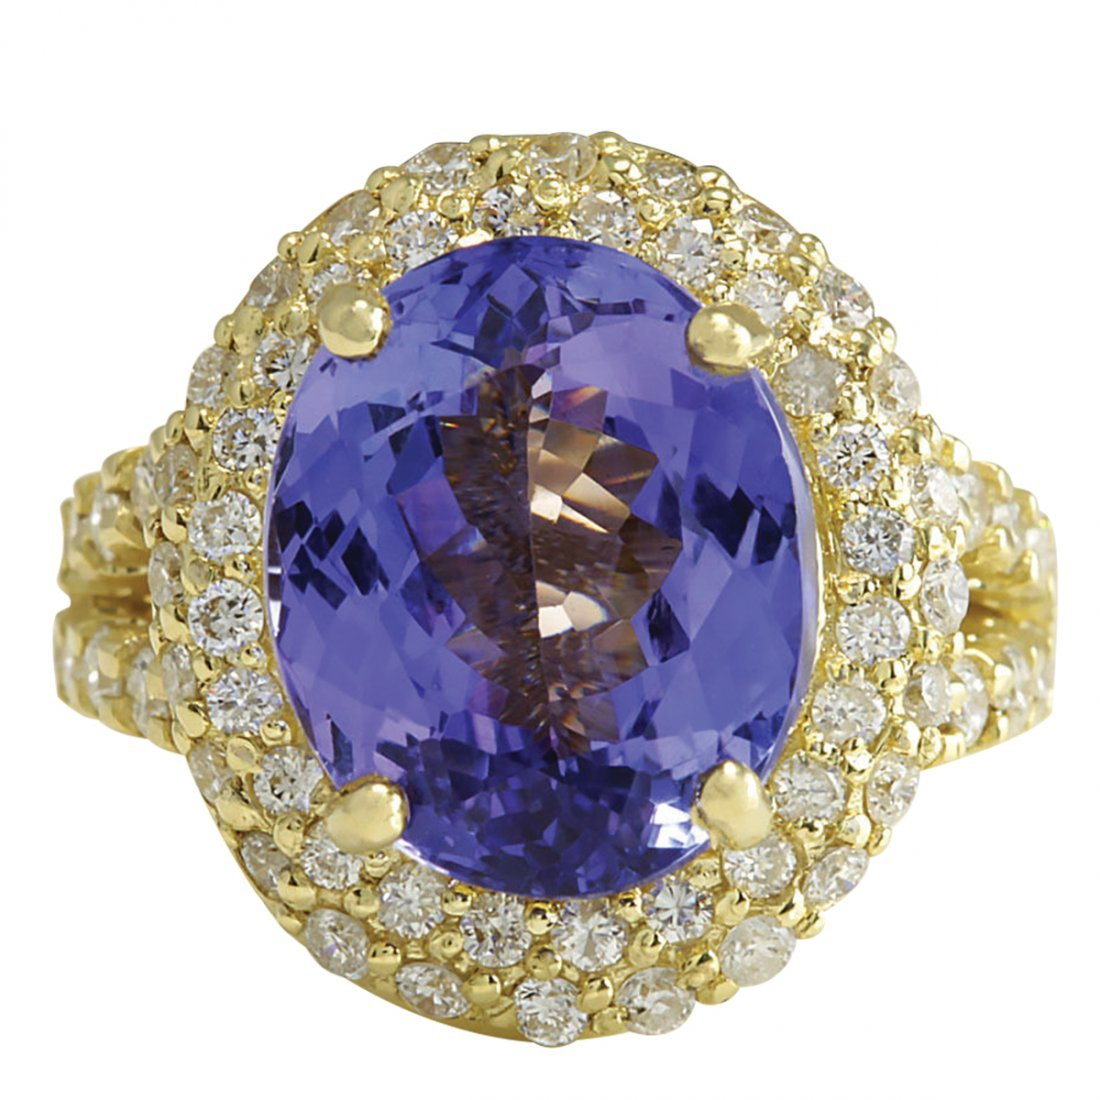 8.54CTW Natural Tanzanite And Diamond Ring In 14K